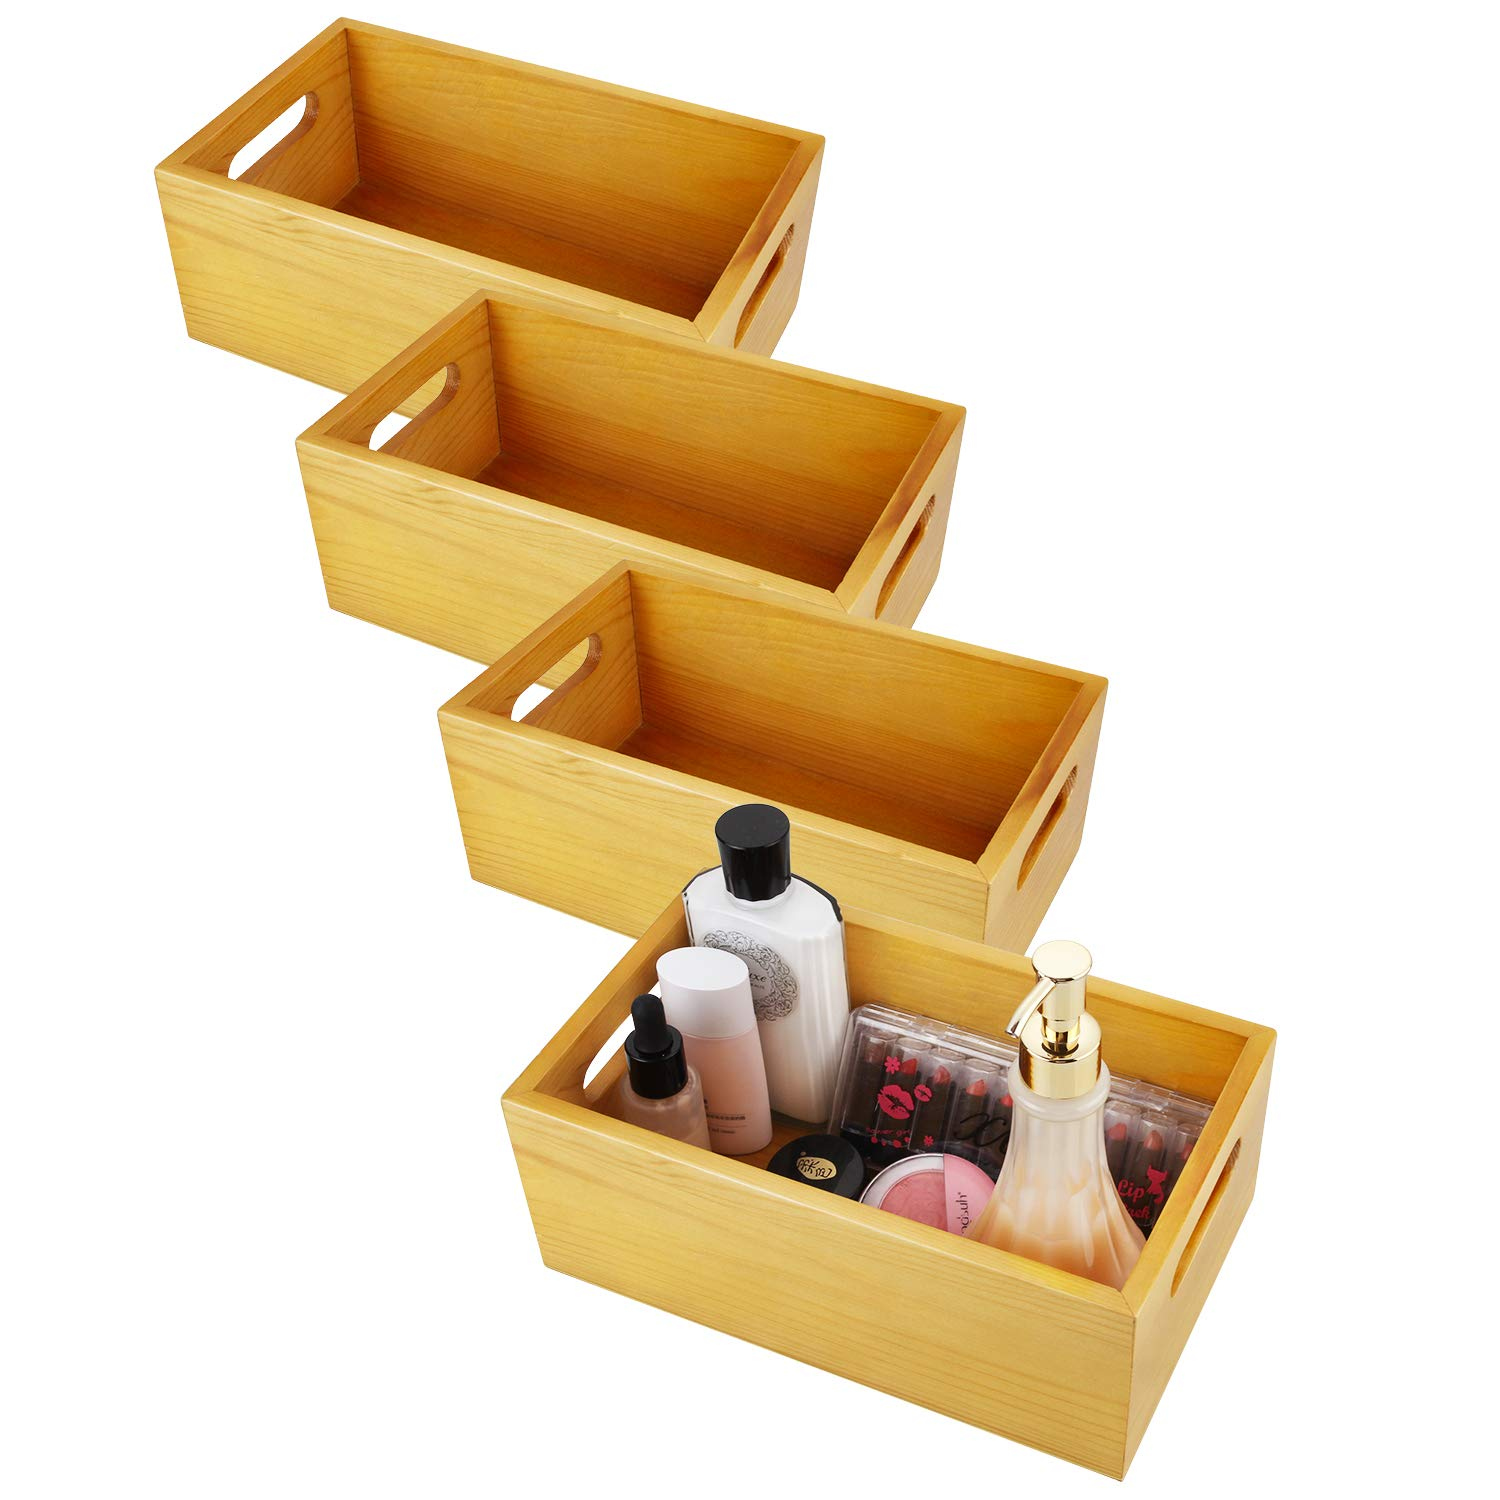 ABUFF 4 Pack of 4'' Deep Pine Wood Organizer Open Box, 10'' X 6'' Toilet Storage Tray with Handle for Tissues, Candles, Soap